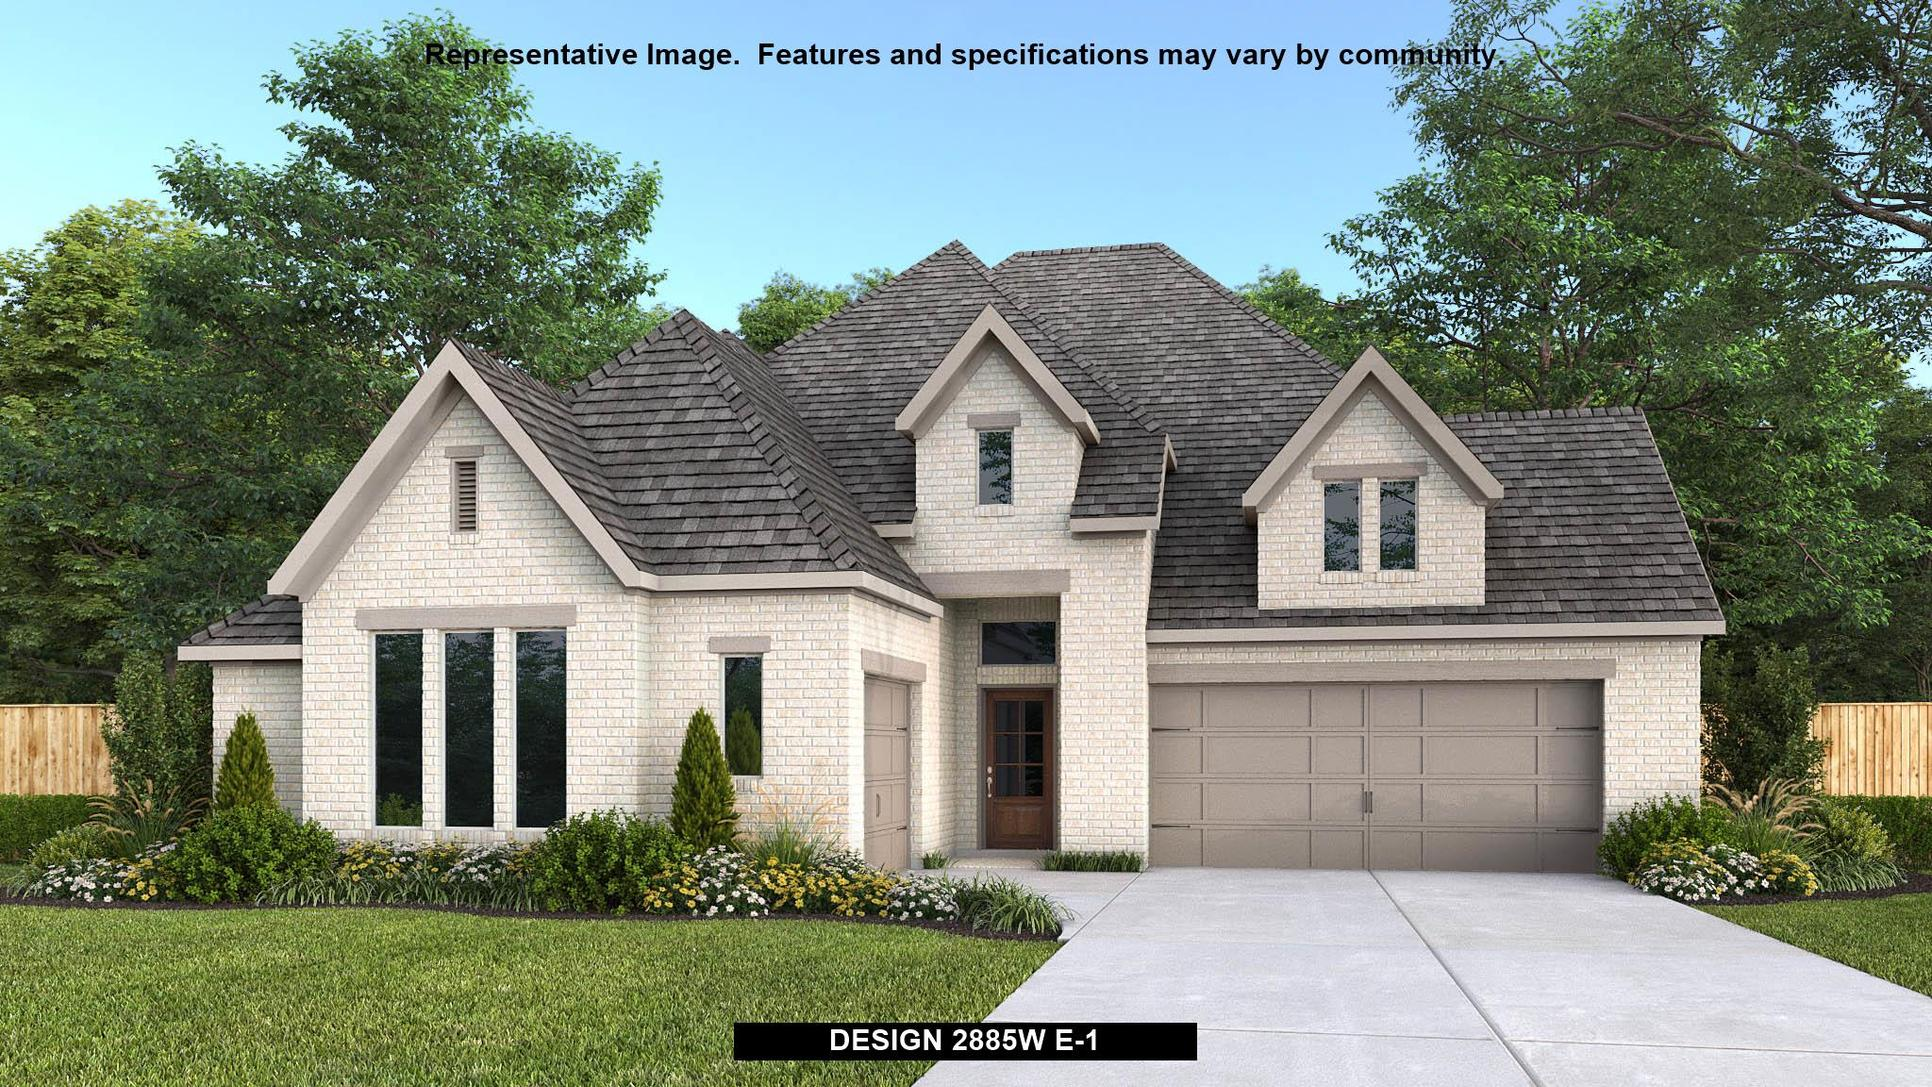 Plan 2885W:Representative photo.  Features and specifications may vary by community.